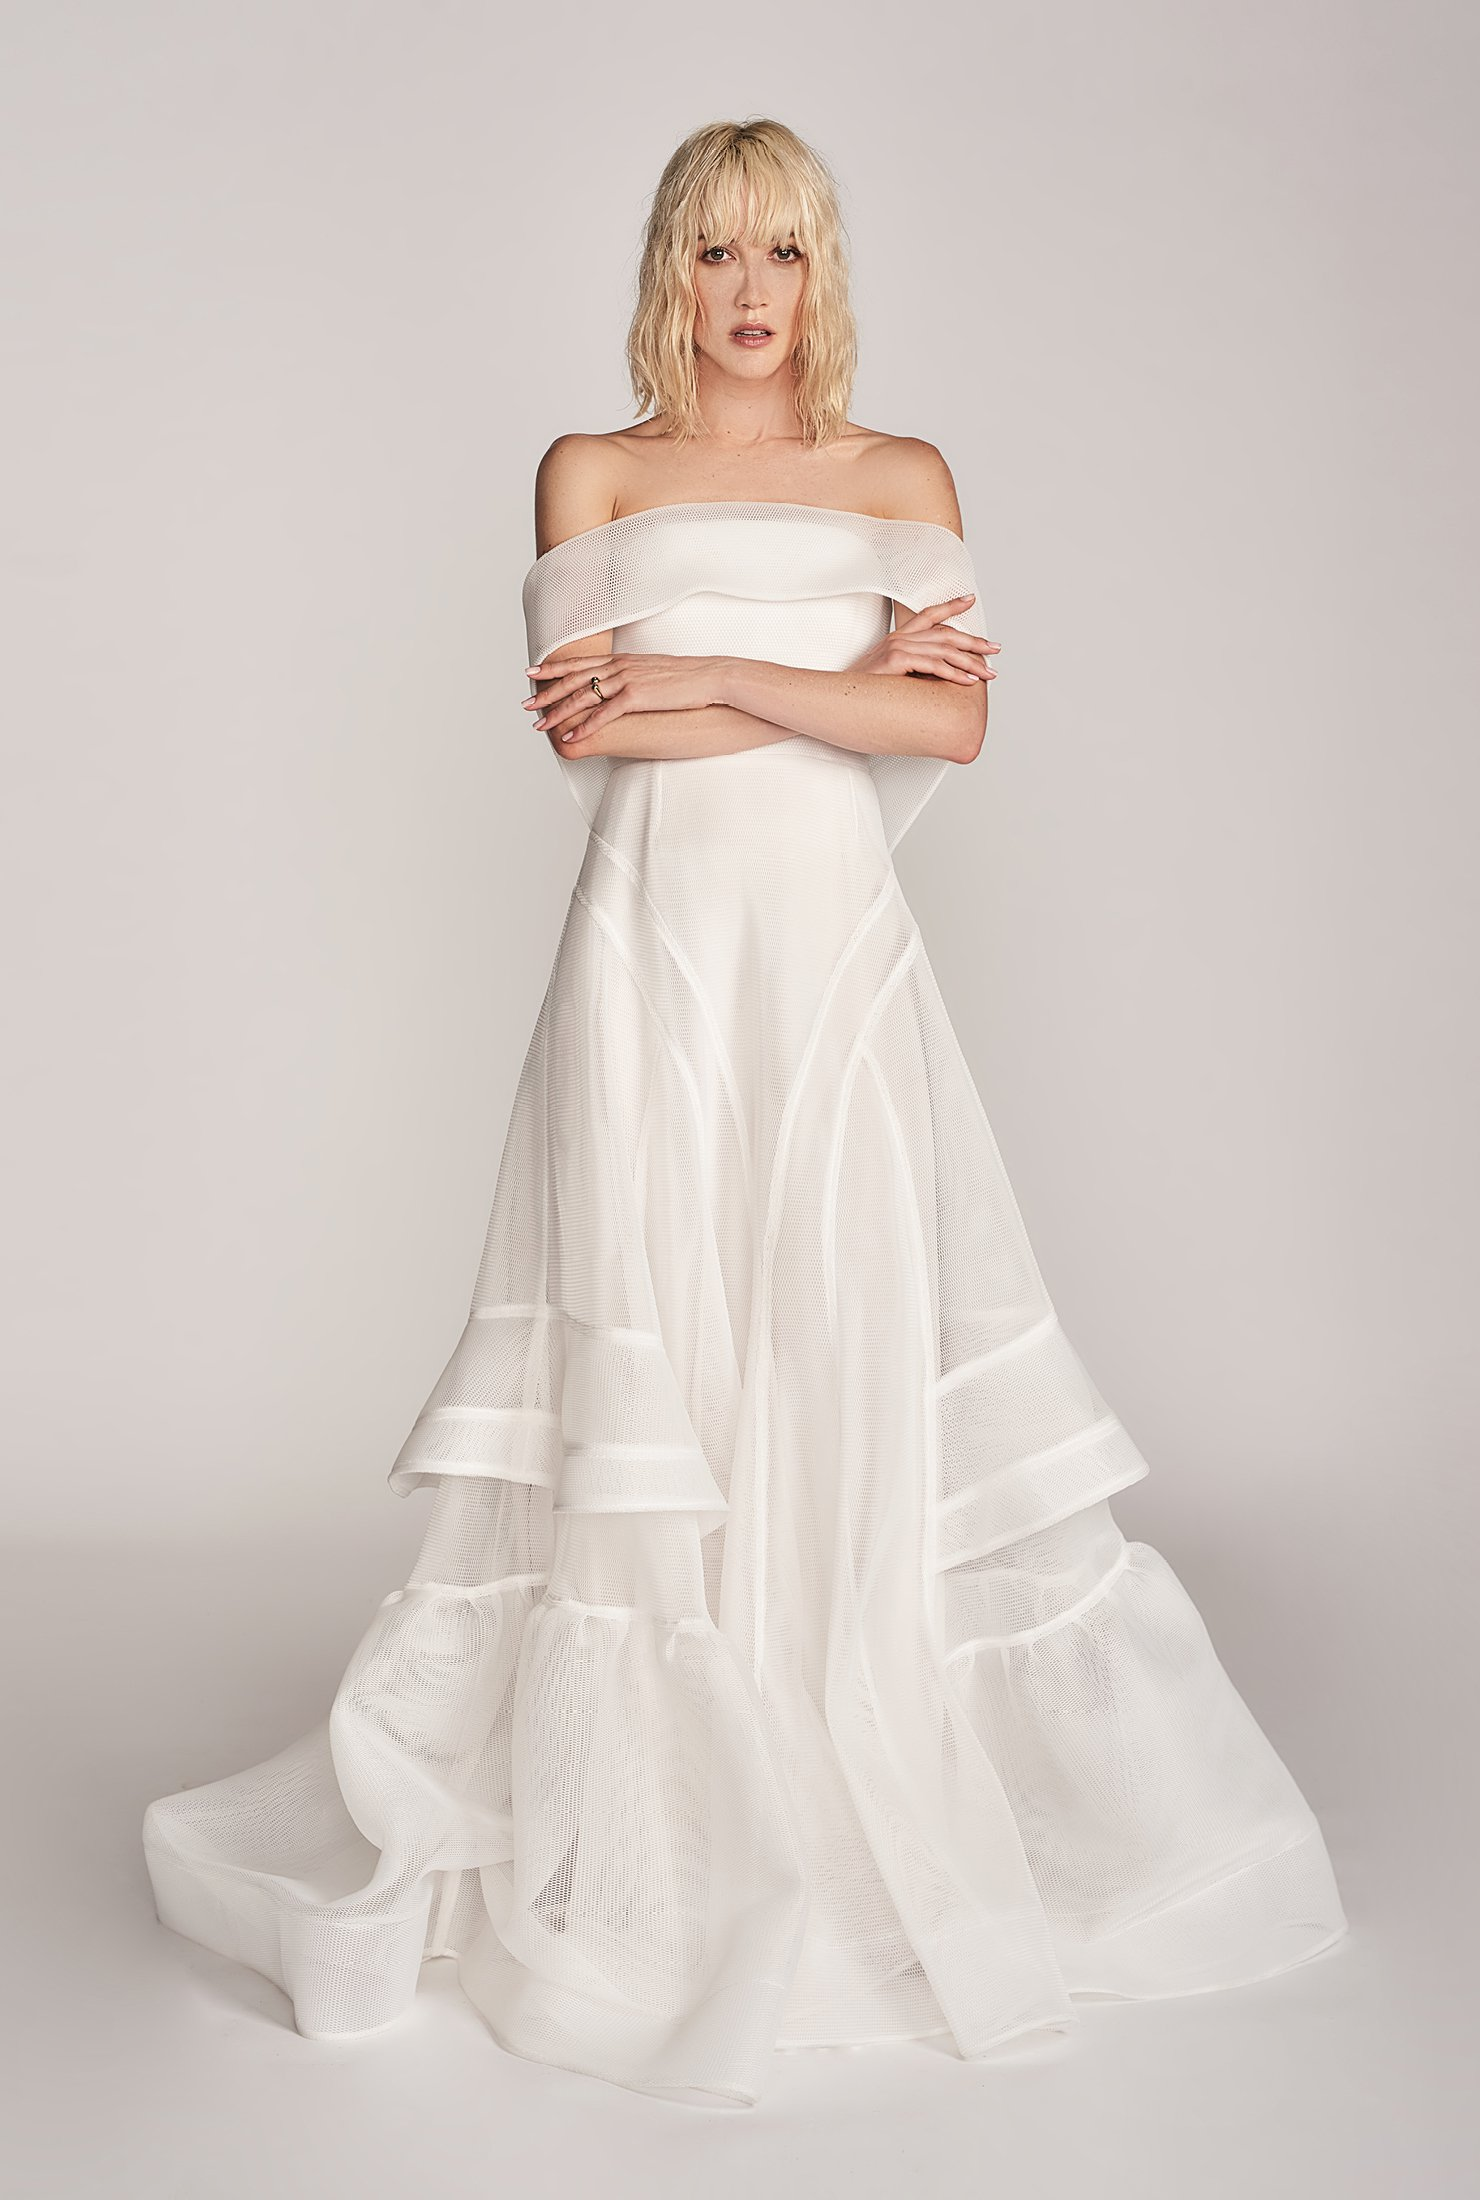 Georgia Young Met Gown, $7290,   Love Marie Bridal Boutique  , Open Ring, from $30,   & Other Stories  .